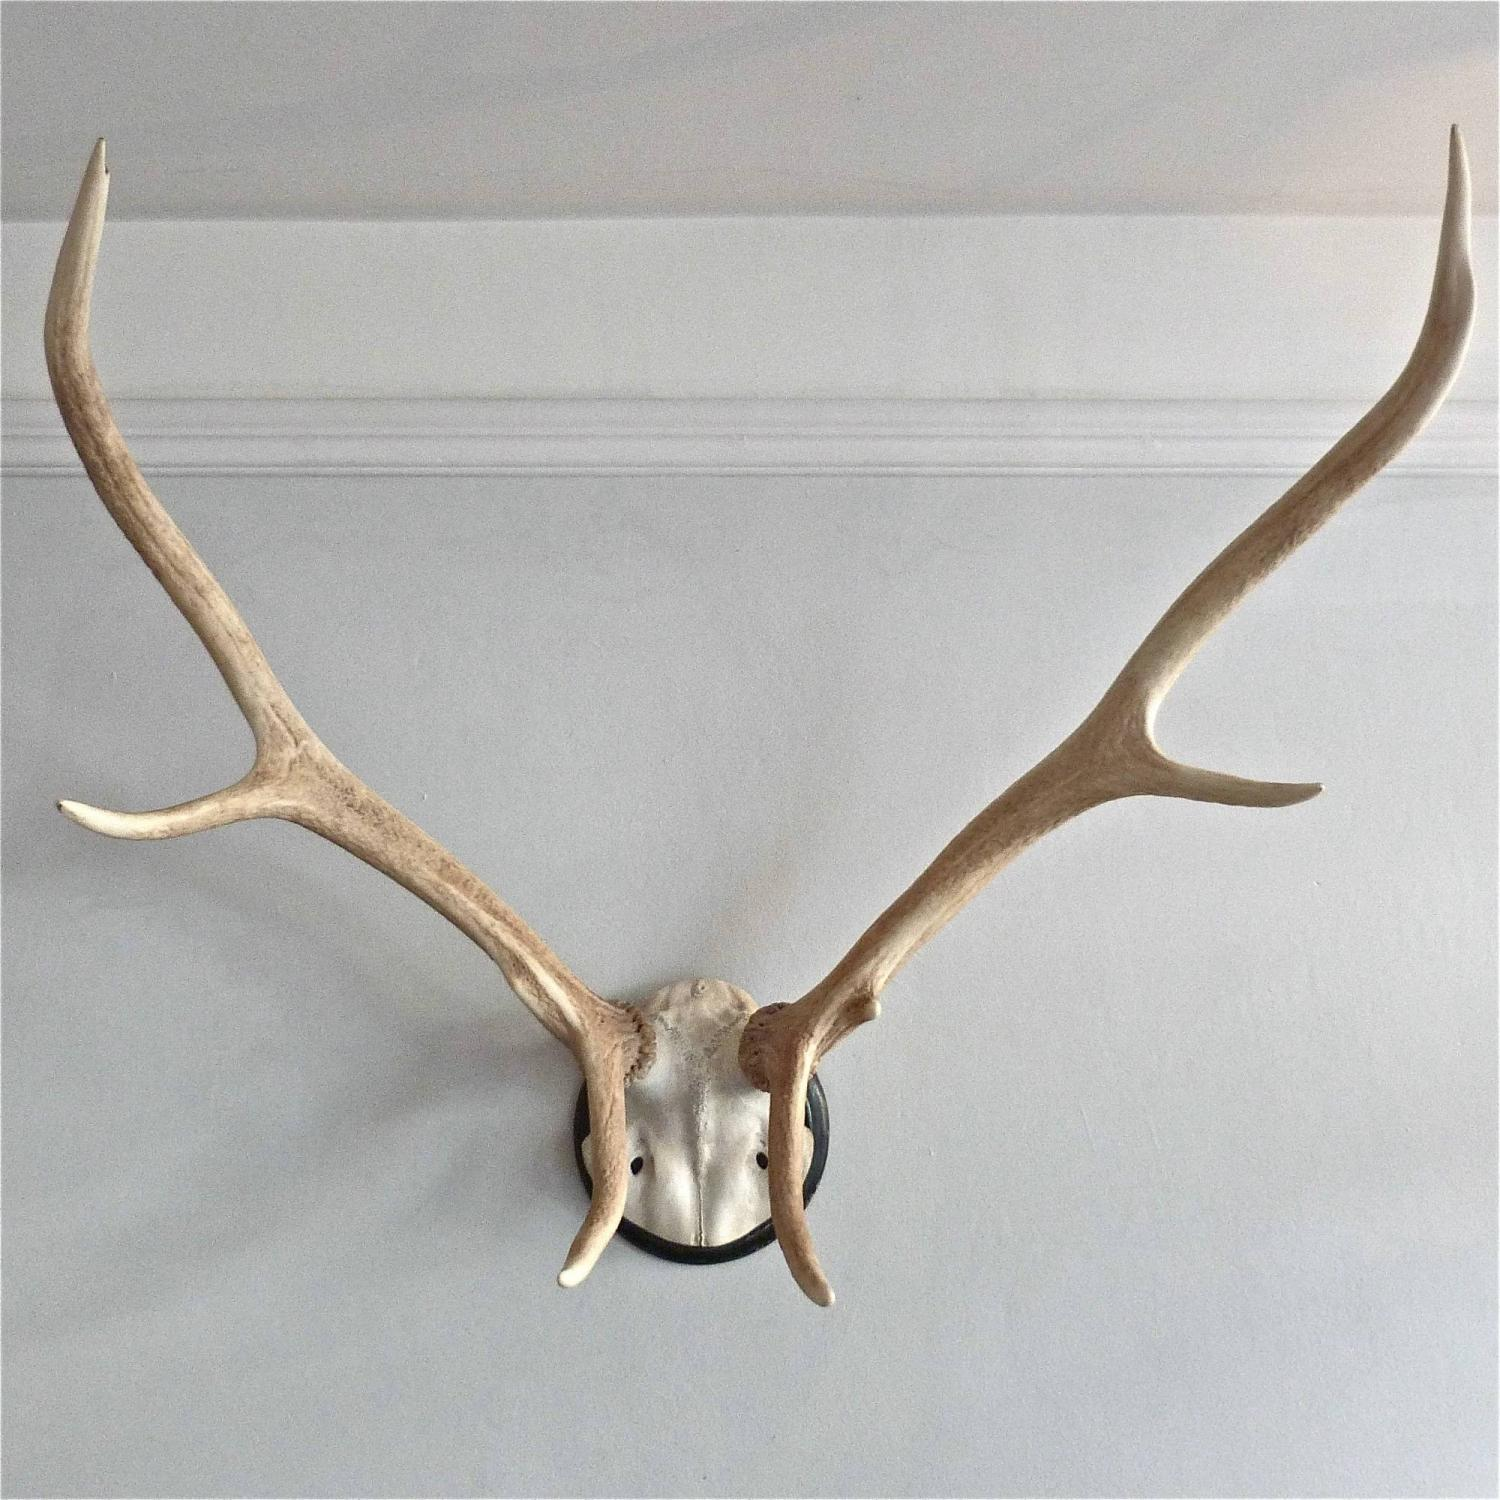 EARLY 20TH CENTURY BLEACHED STAG ANTLERS